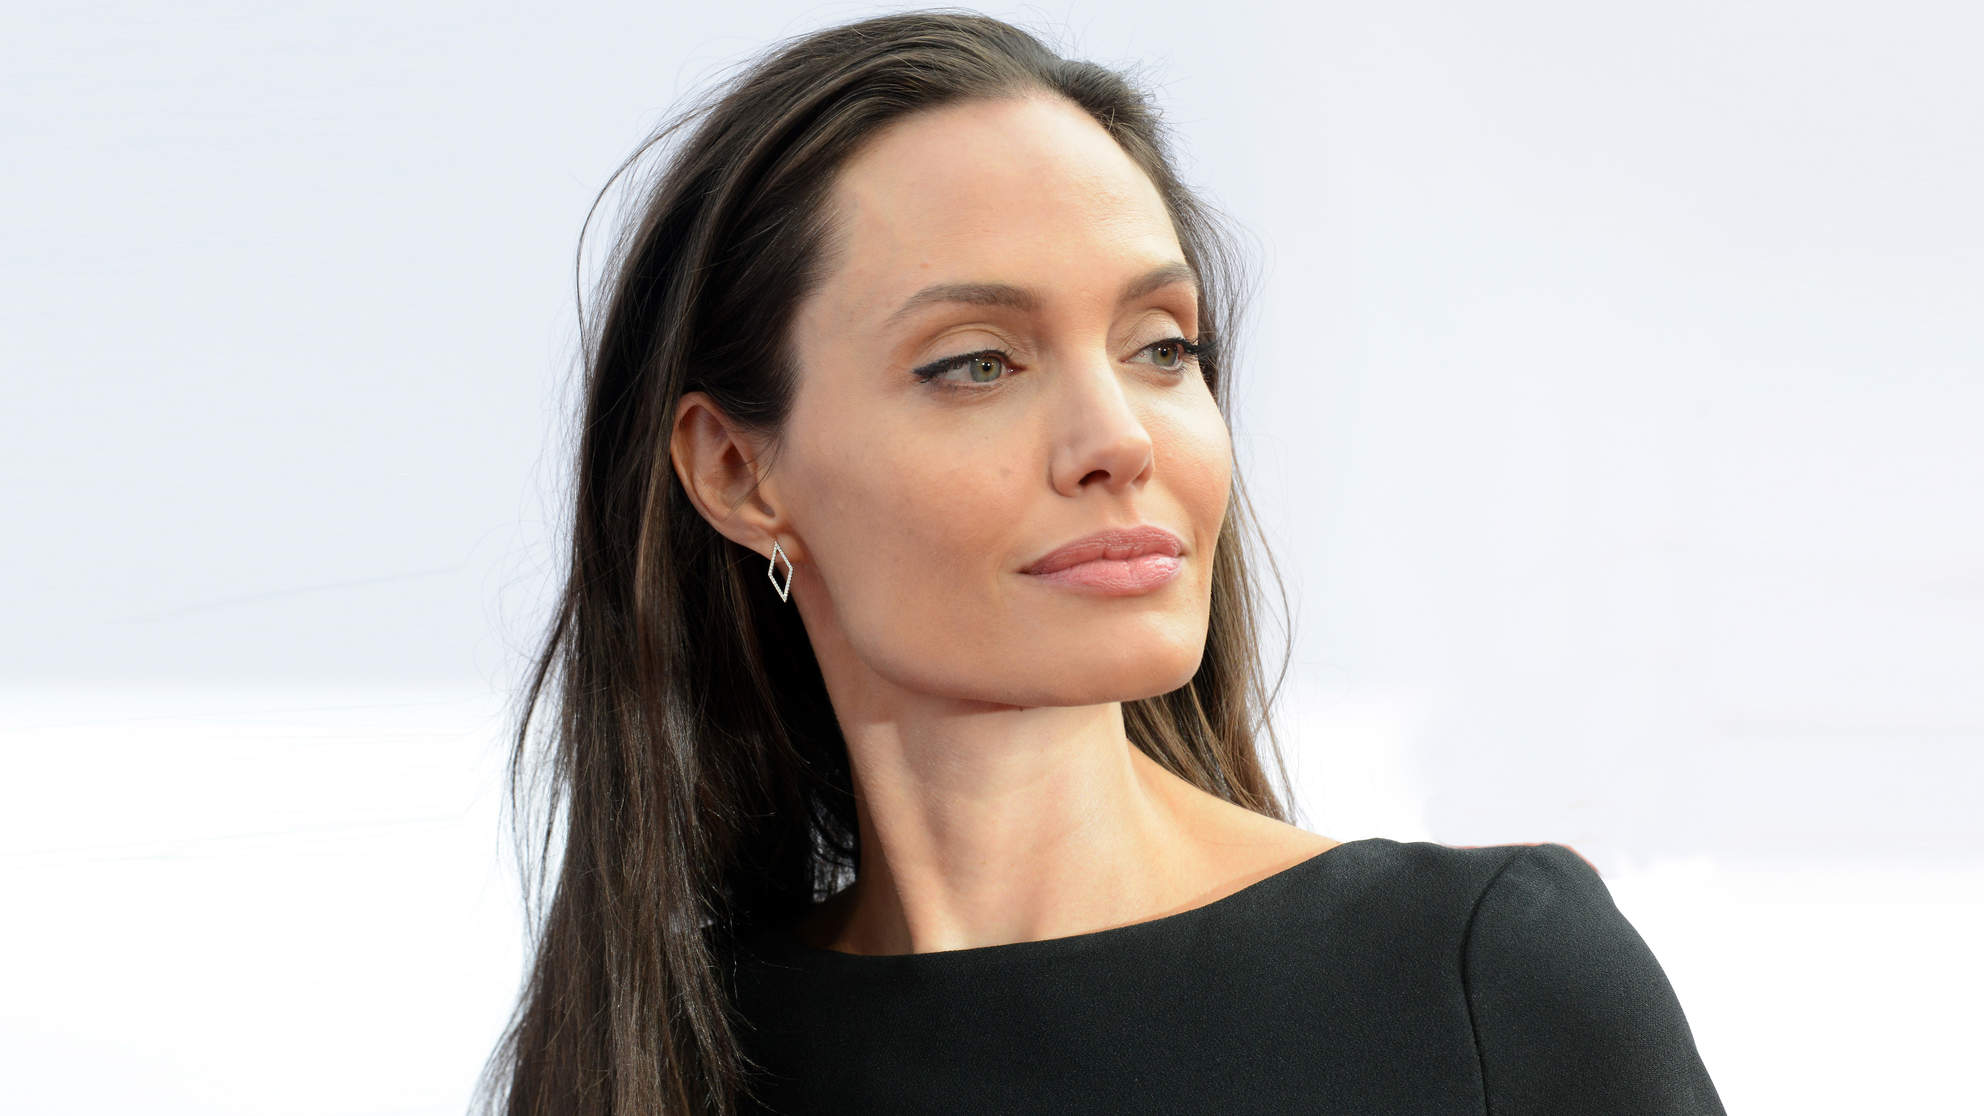 Angelina Jolie Opens Up to PEOPLE About Her 'Difficult' Year: 'I Am a Little Bit Stronger'